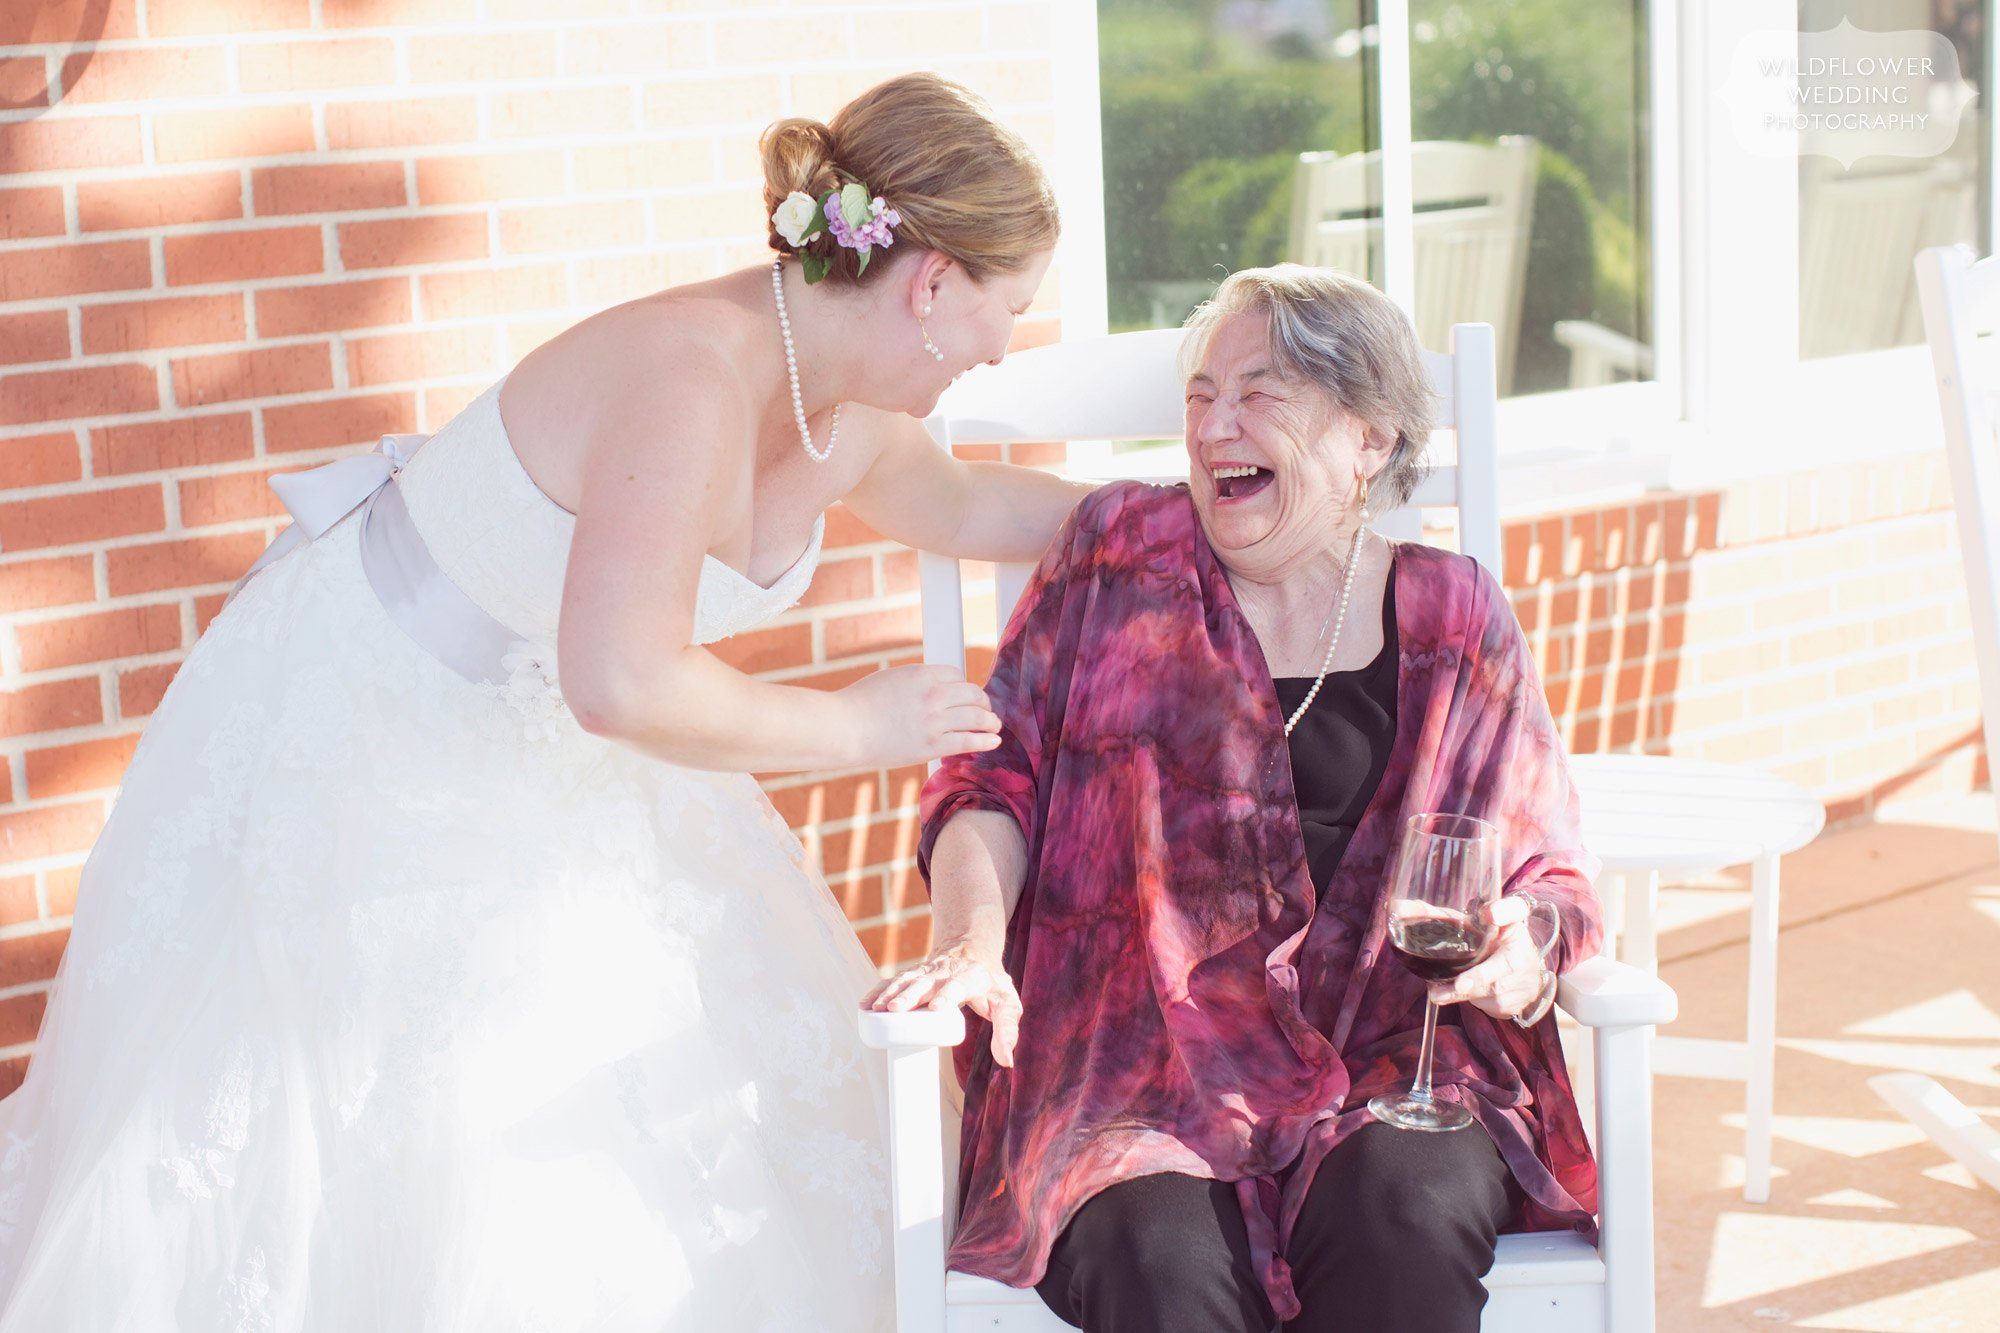 Great photojournalistic wedding photo of the bride with her grandmother at wedding in Columbia, MO.